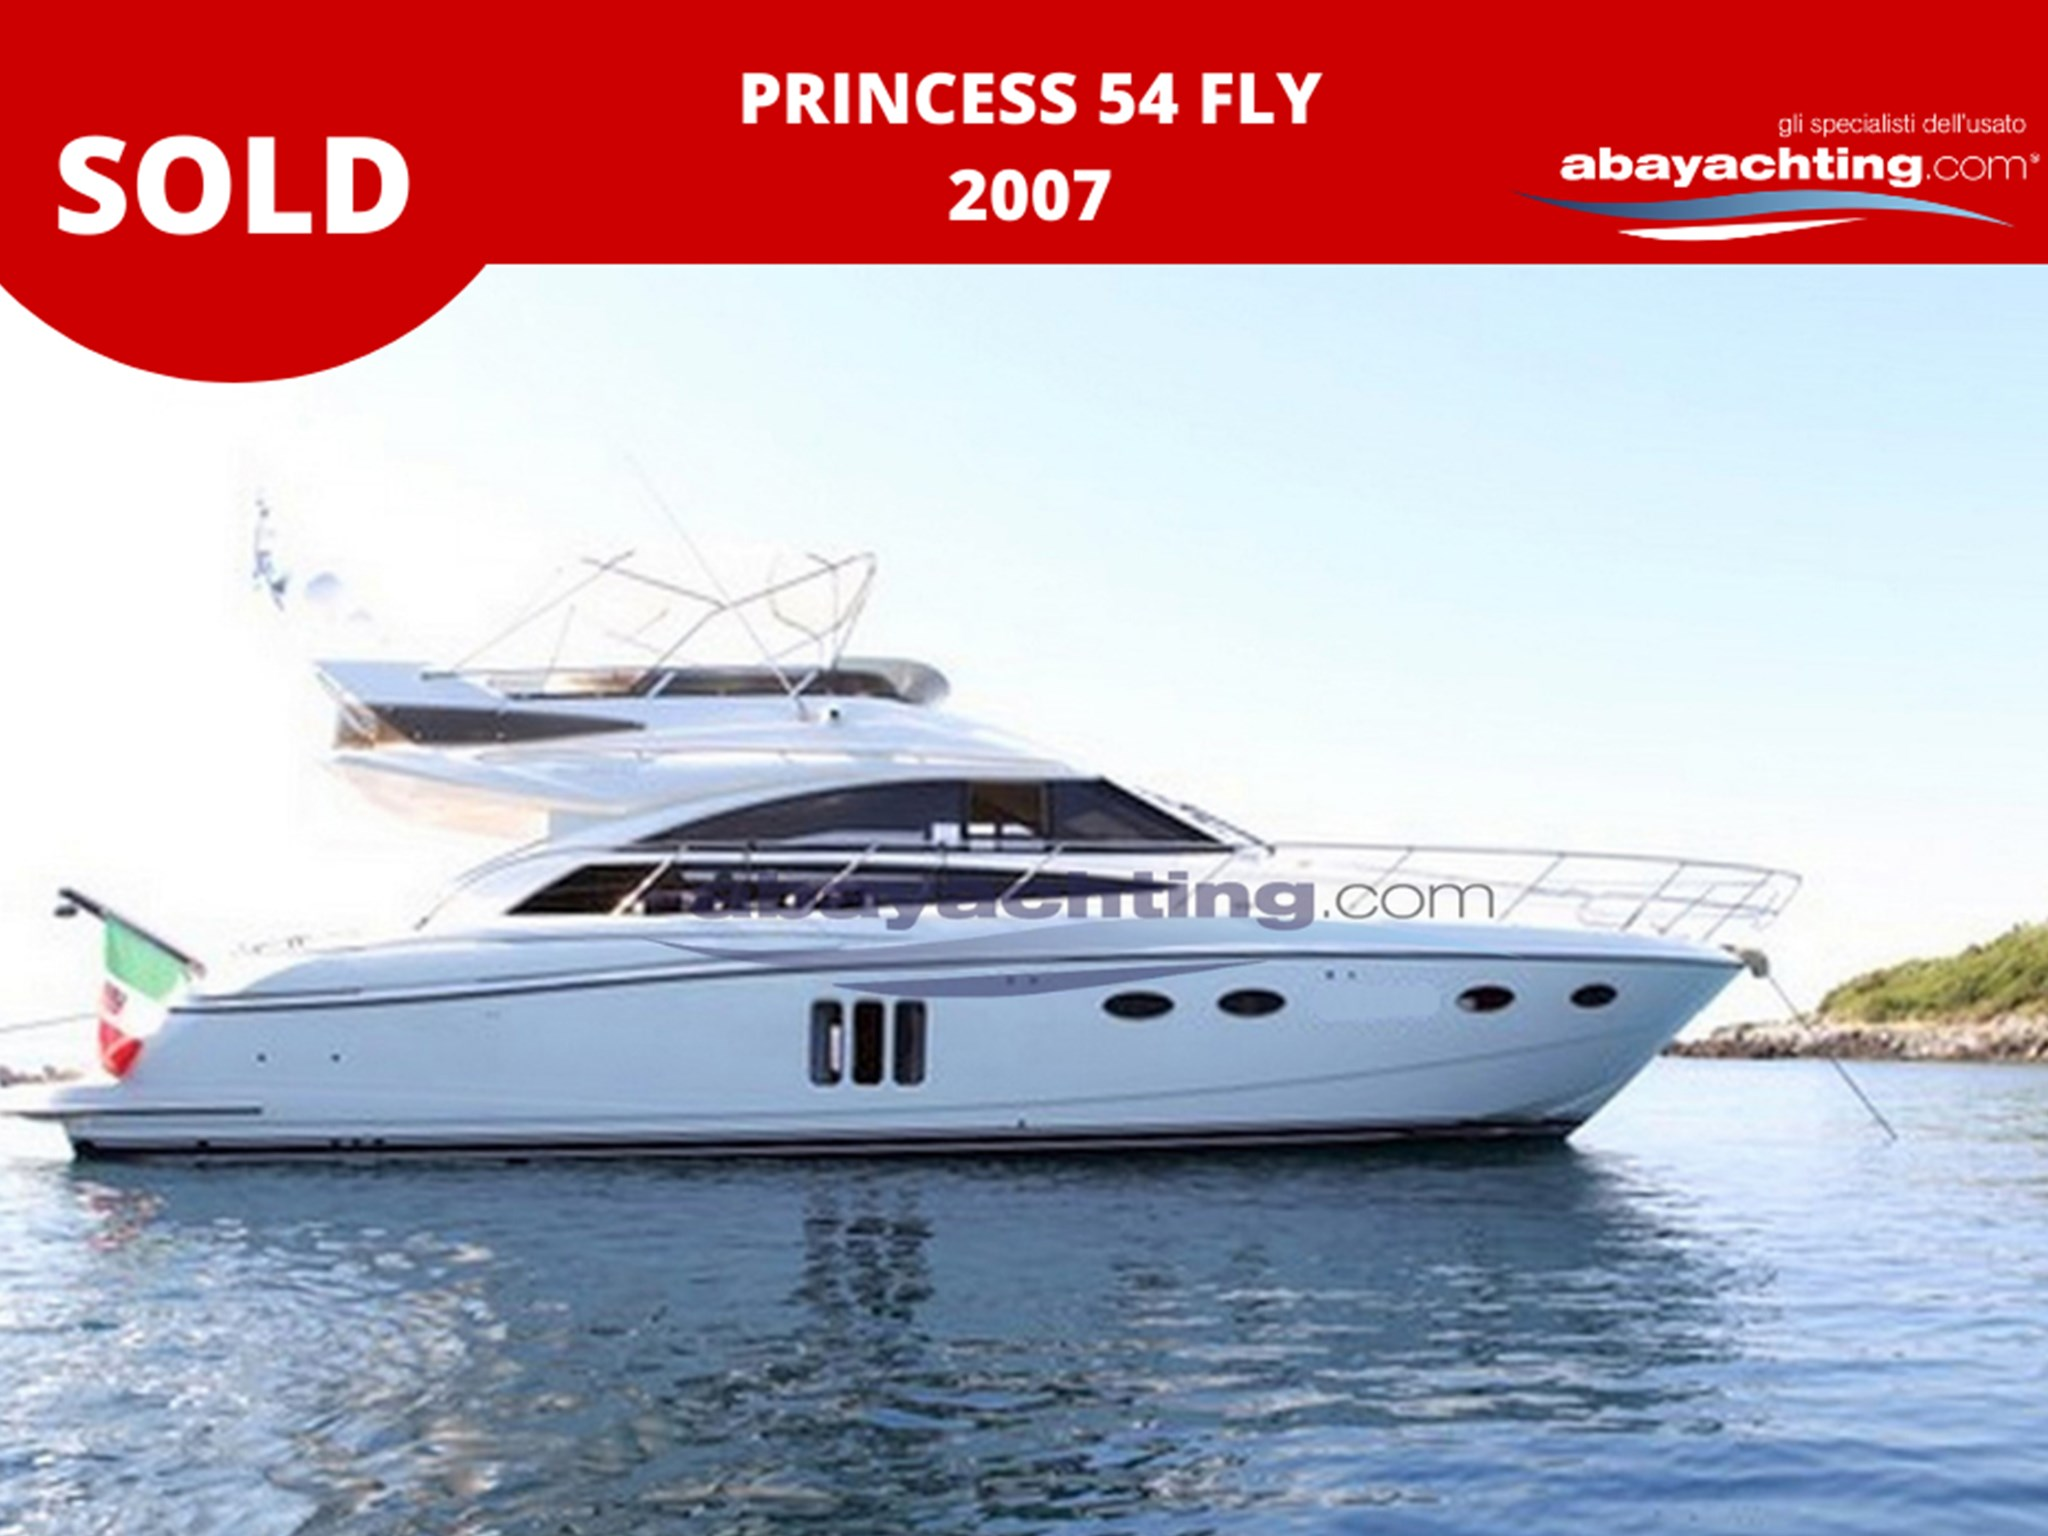 Princess 54 sold